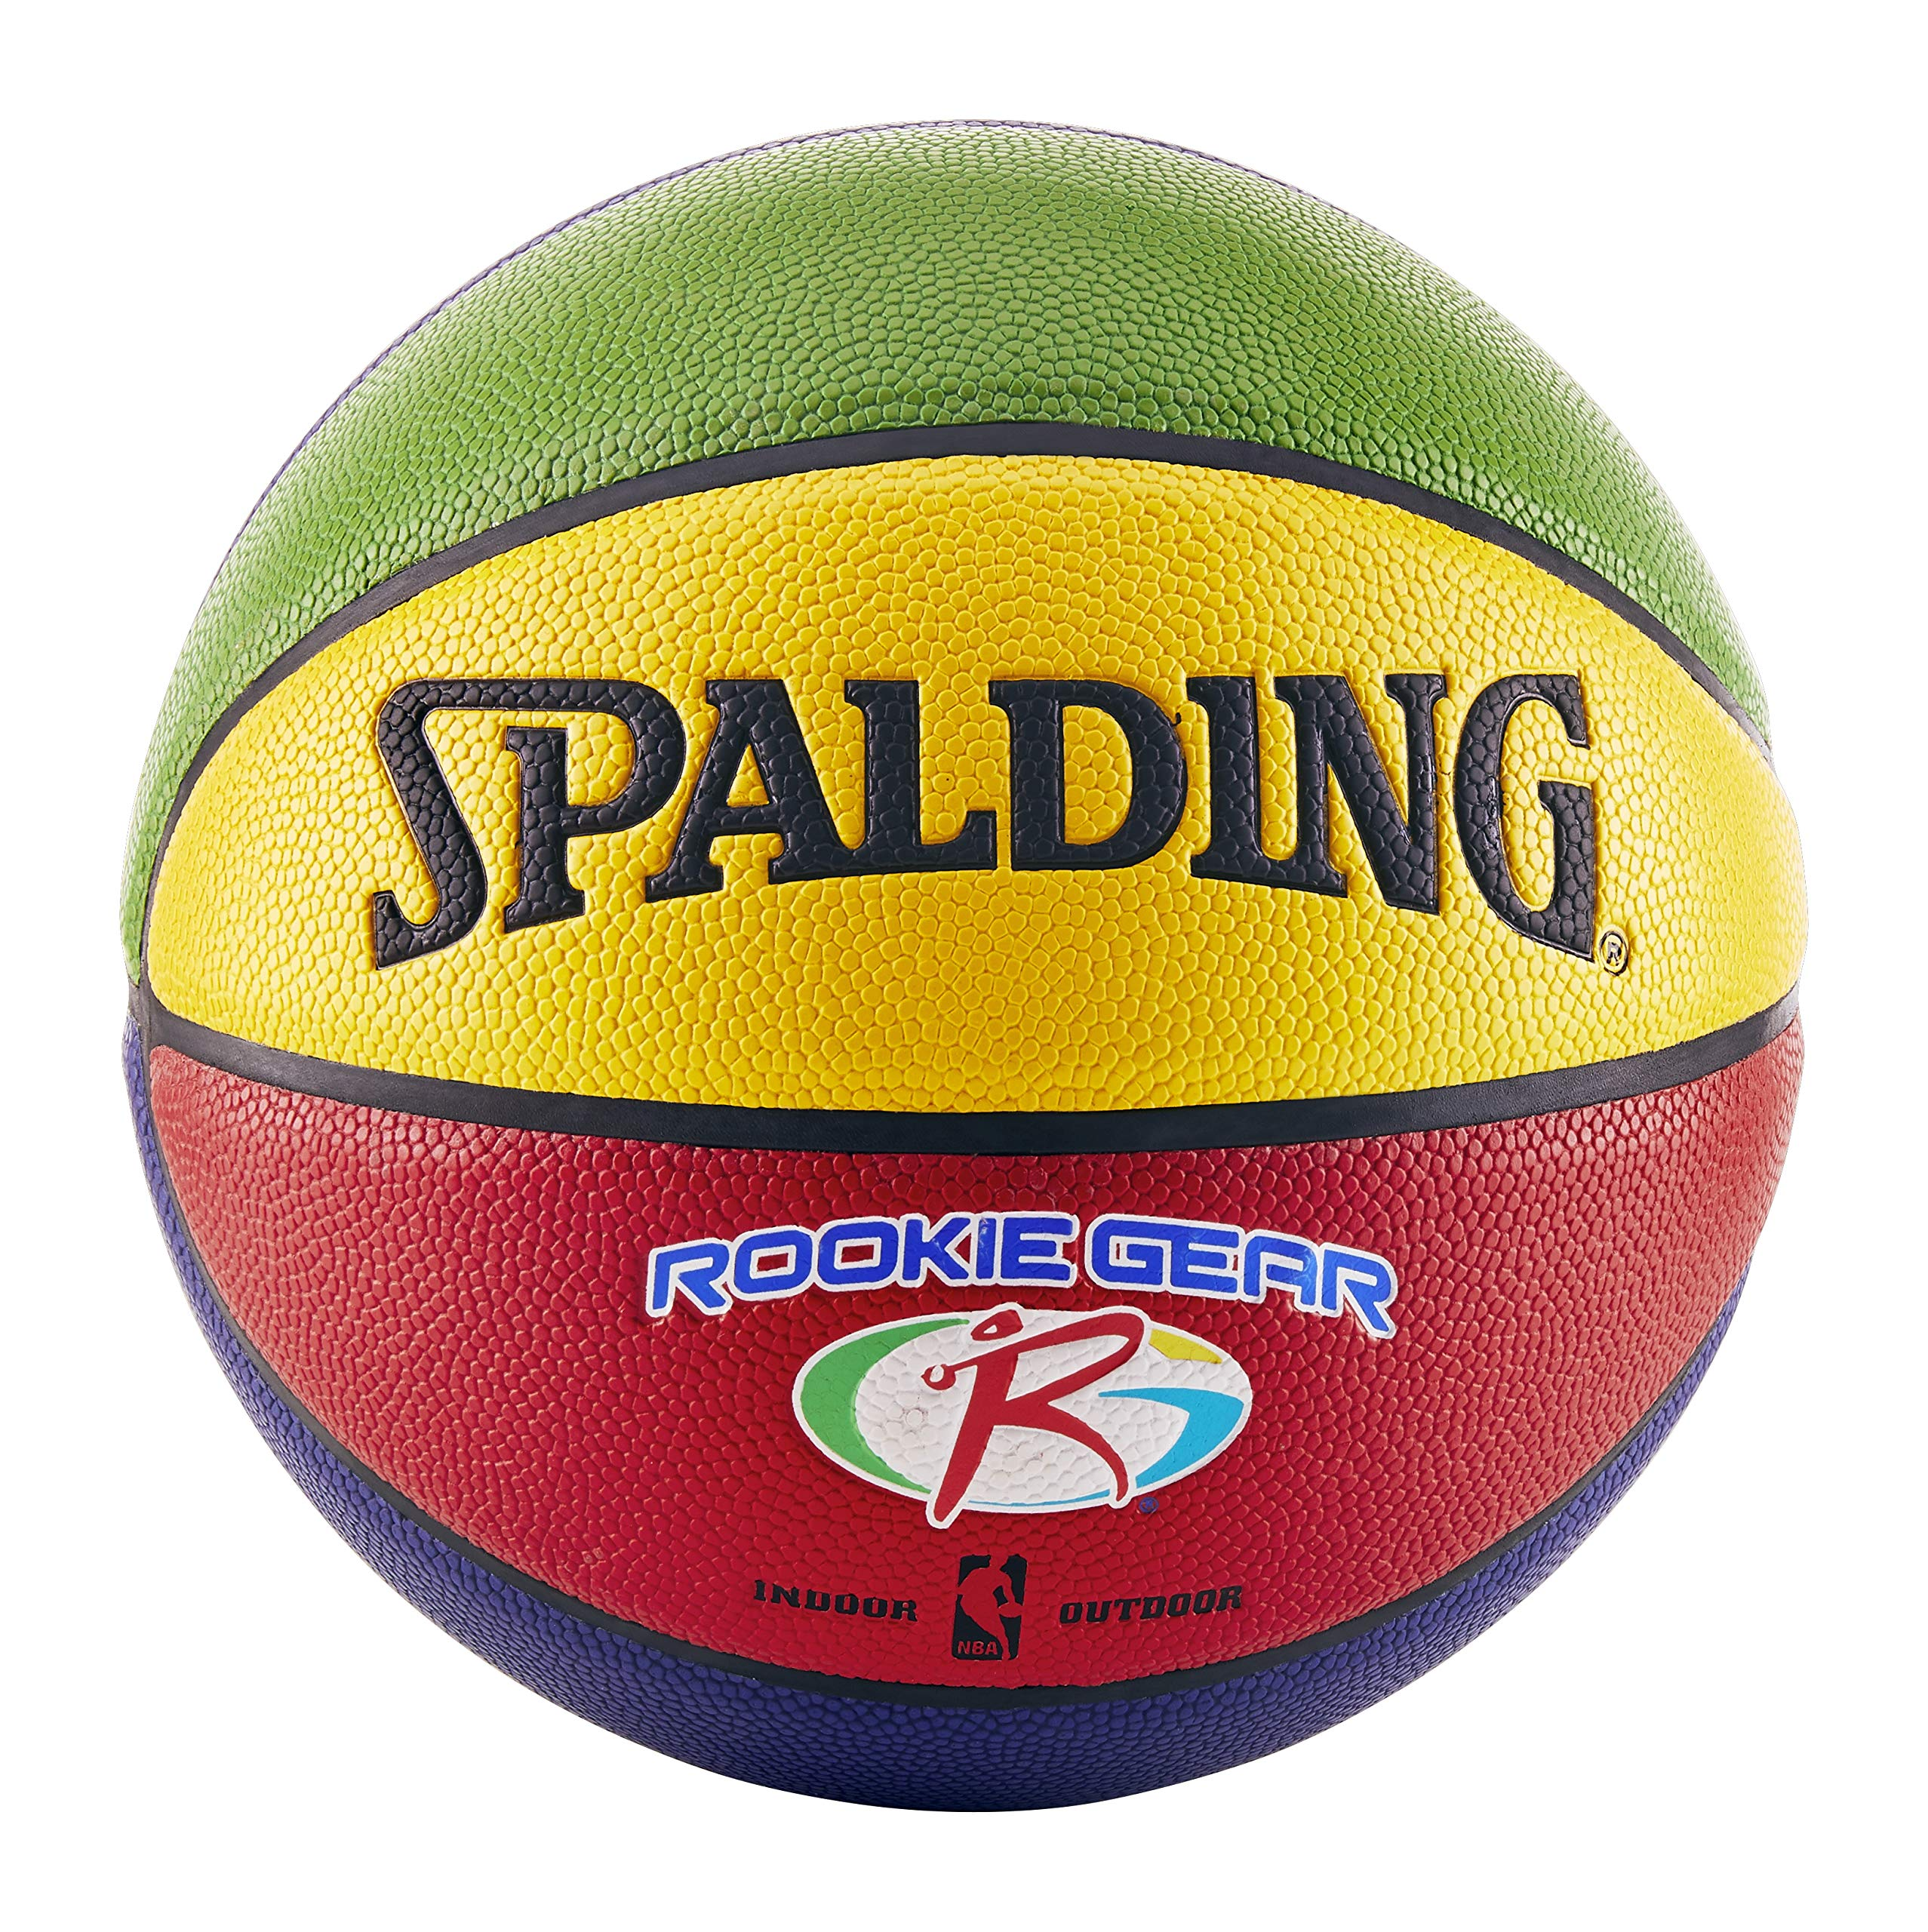 Spalding Rookie Gear Basketball - Multi-Color - Youth Size (27.5'')